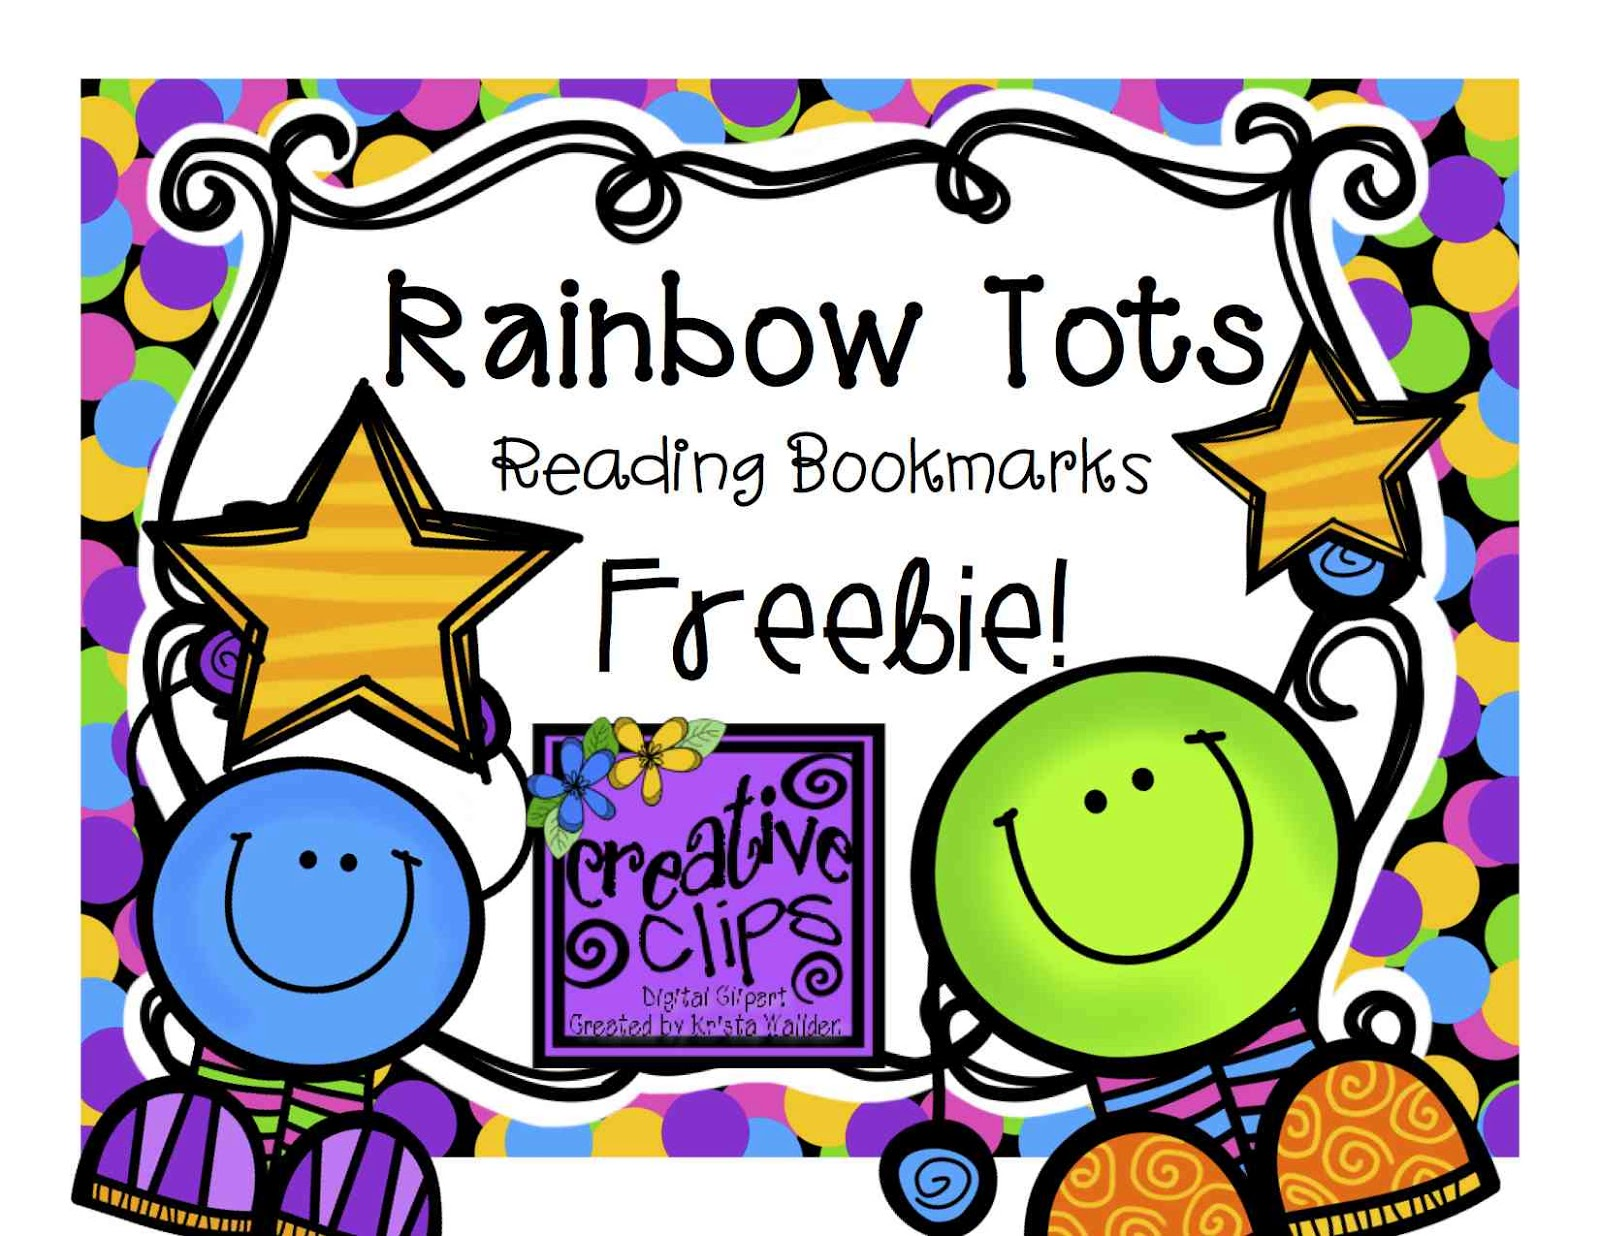 1600x1236 The Creative Chalkboard Free Super Star Reader Bookmarks!